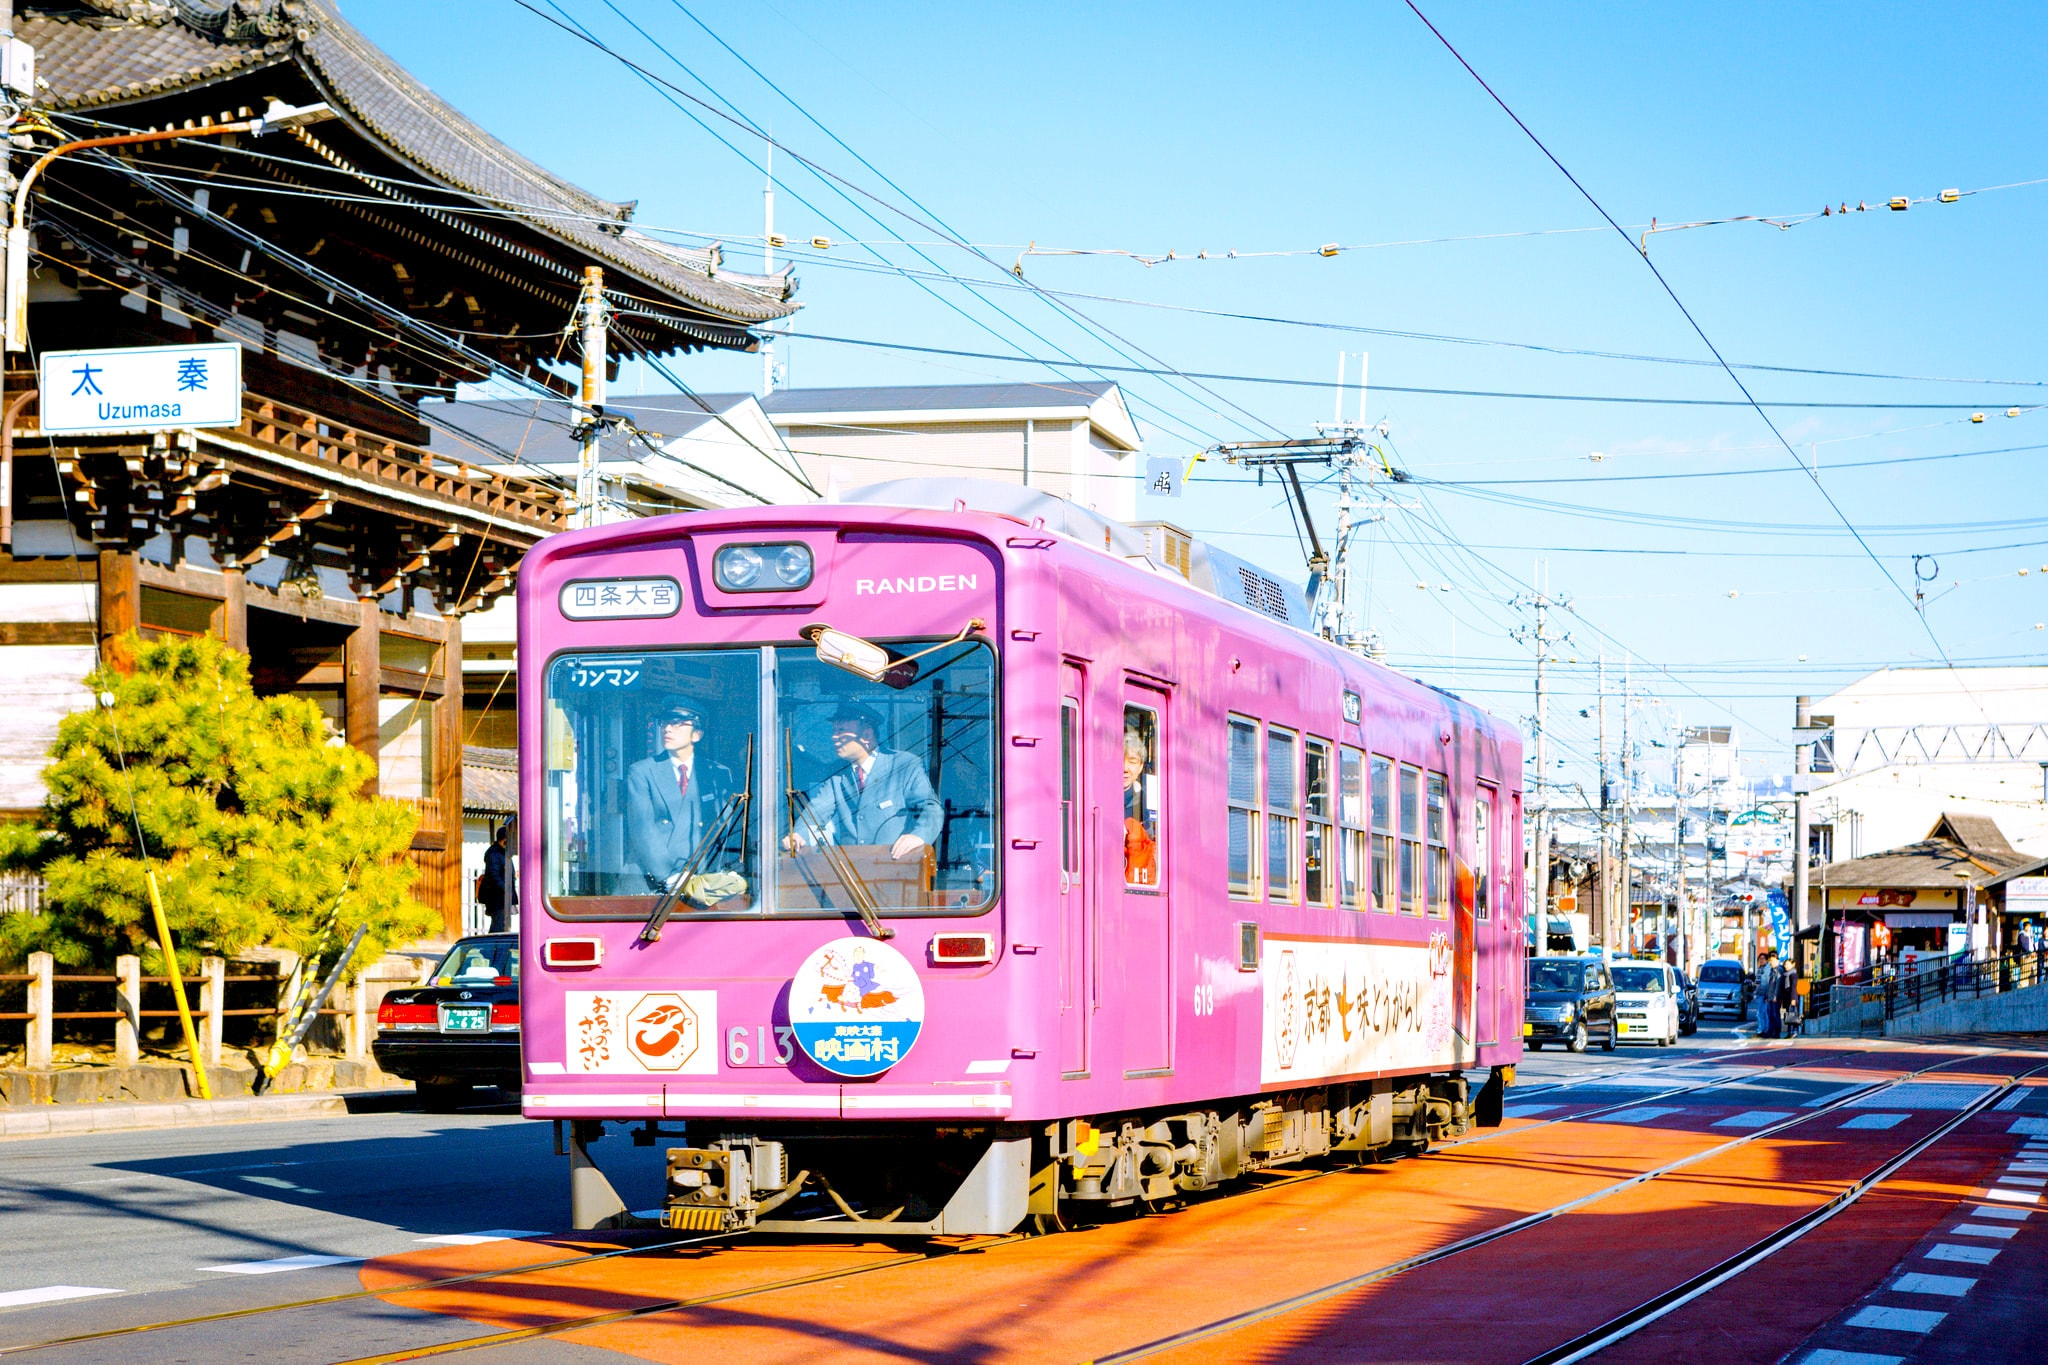 Randen bus, public transportation in Kyoto, best cities to visit in Japan